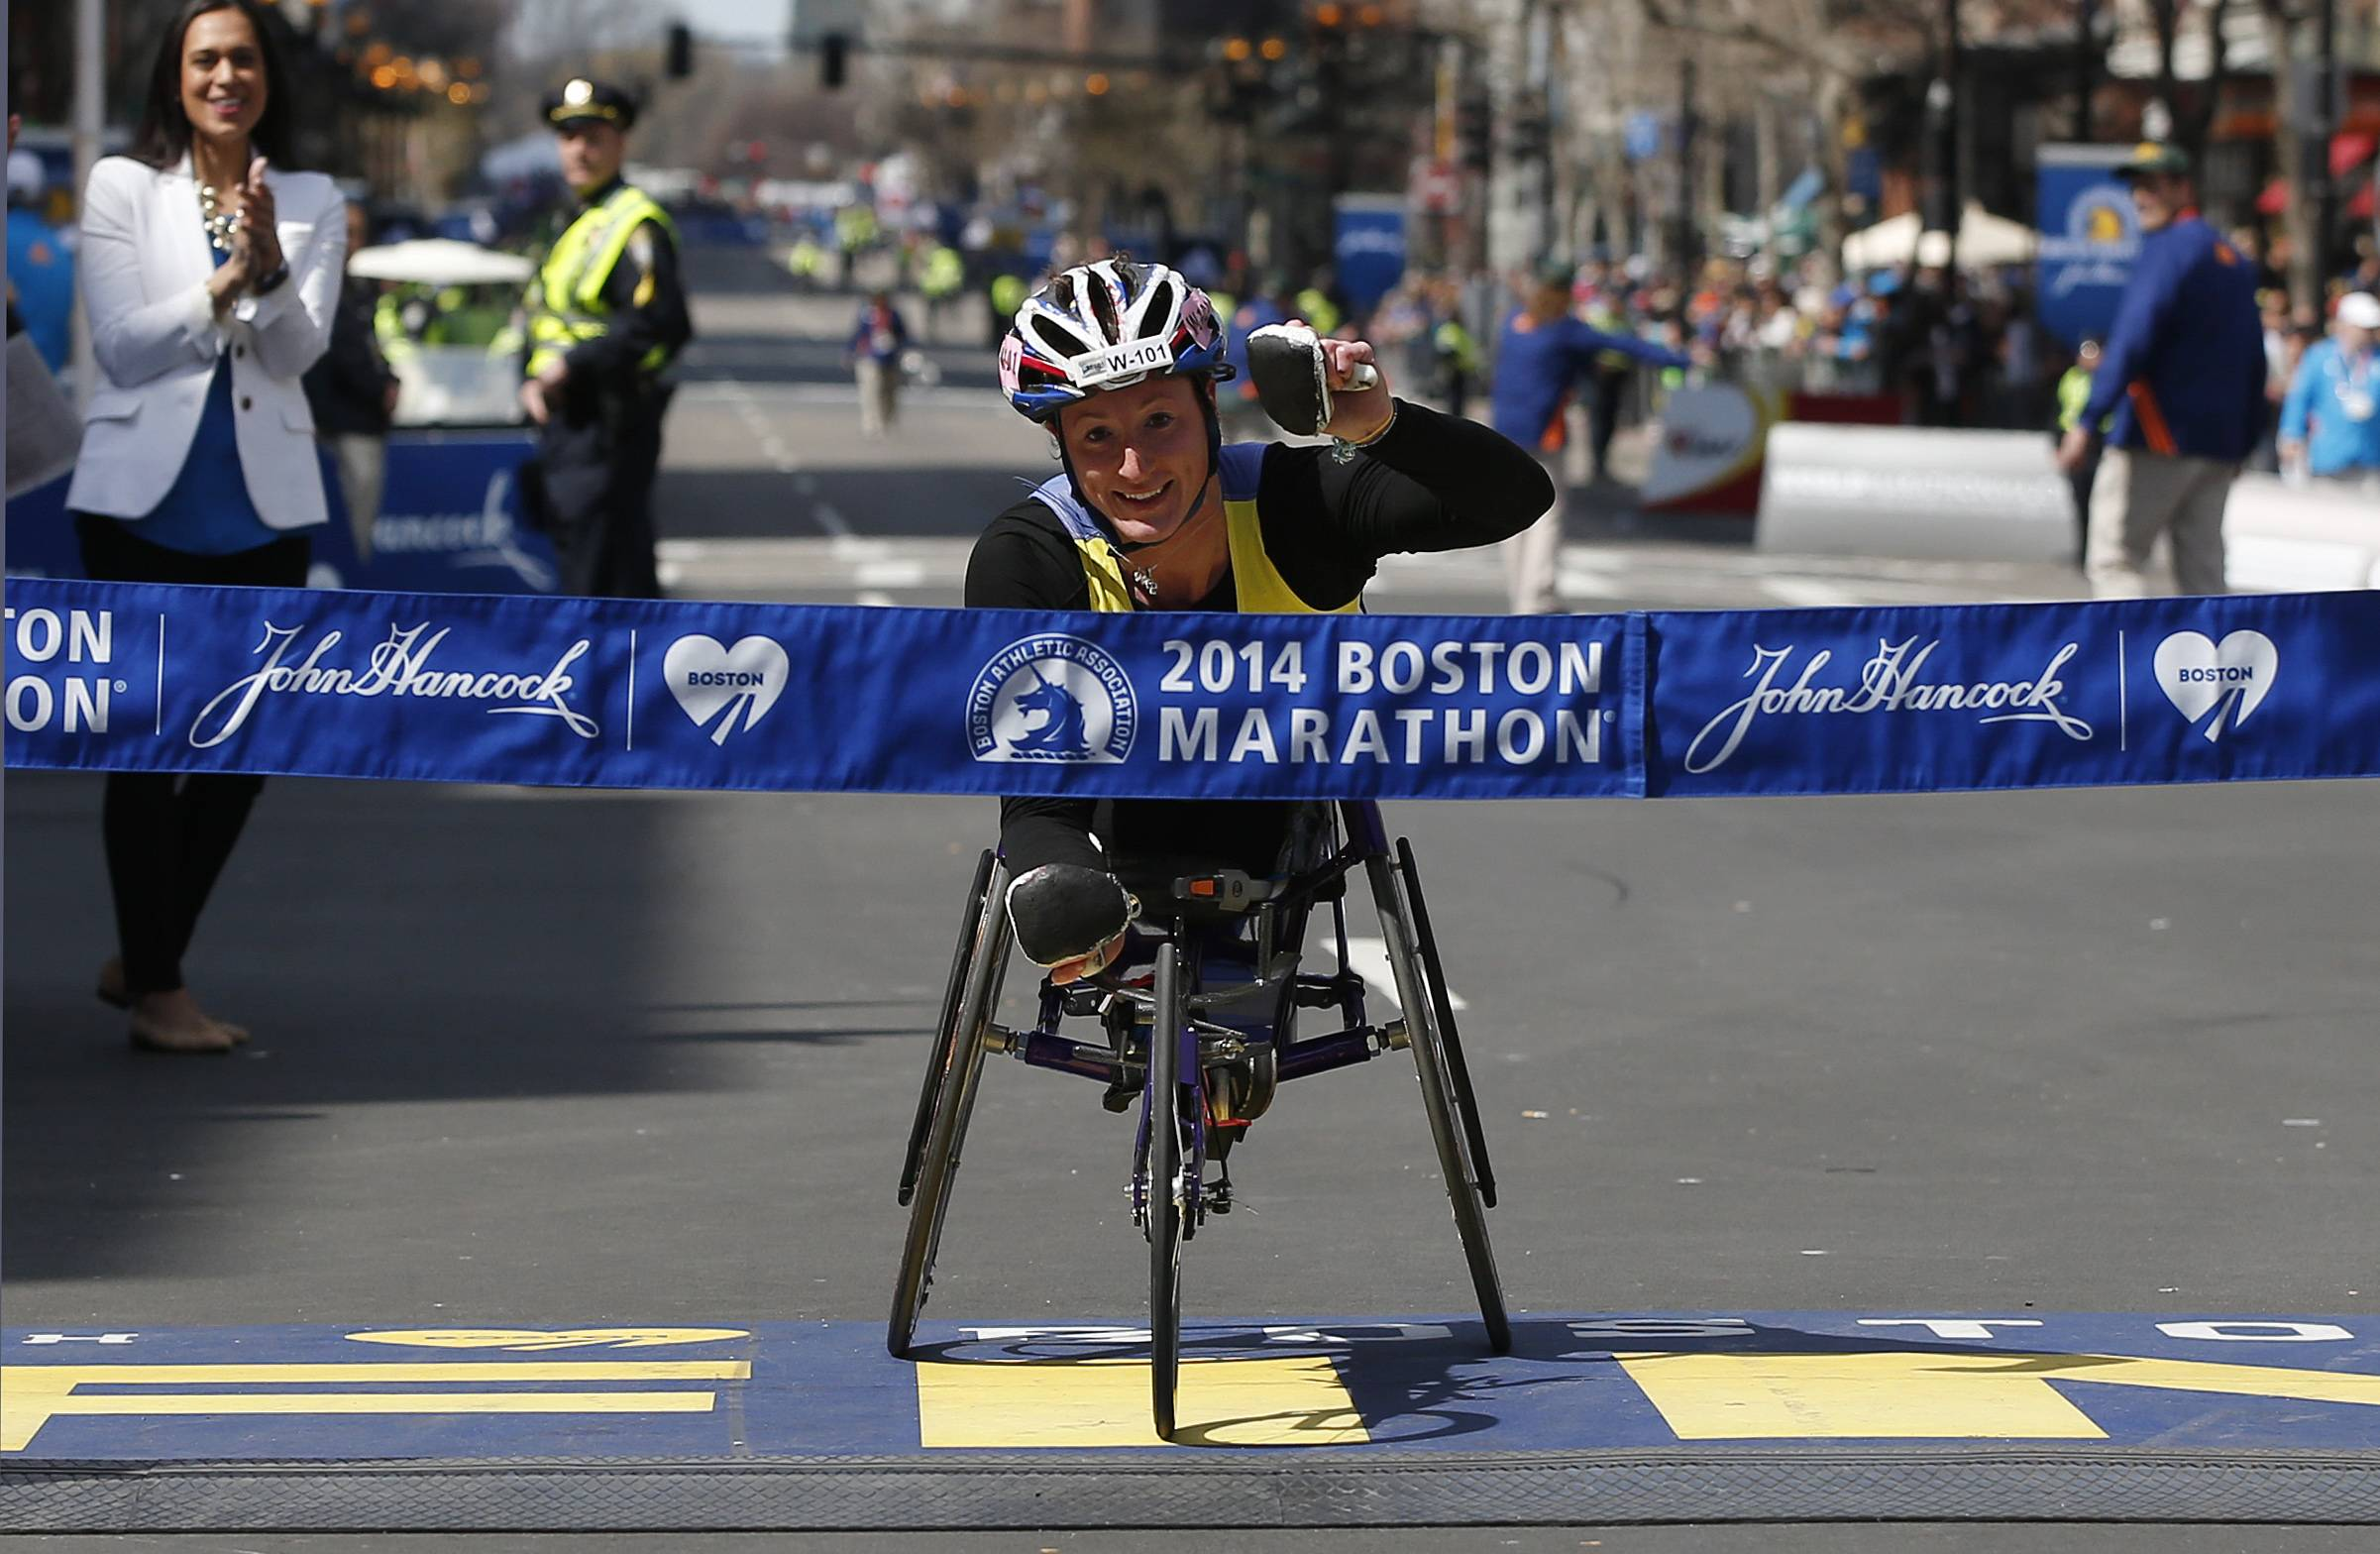 Tatyana McFadden, of the United States, gestures before breaking the tape to win the women's wheelchair division of the 118th Boston Marathon Monday, April 21, 2014 in Boston.